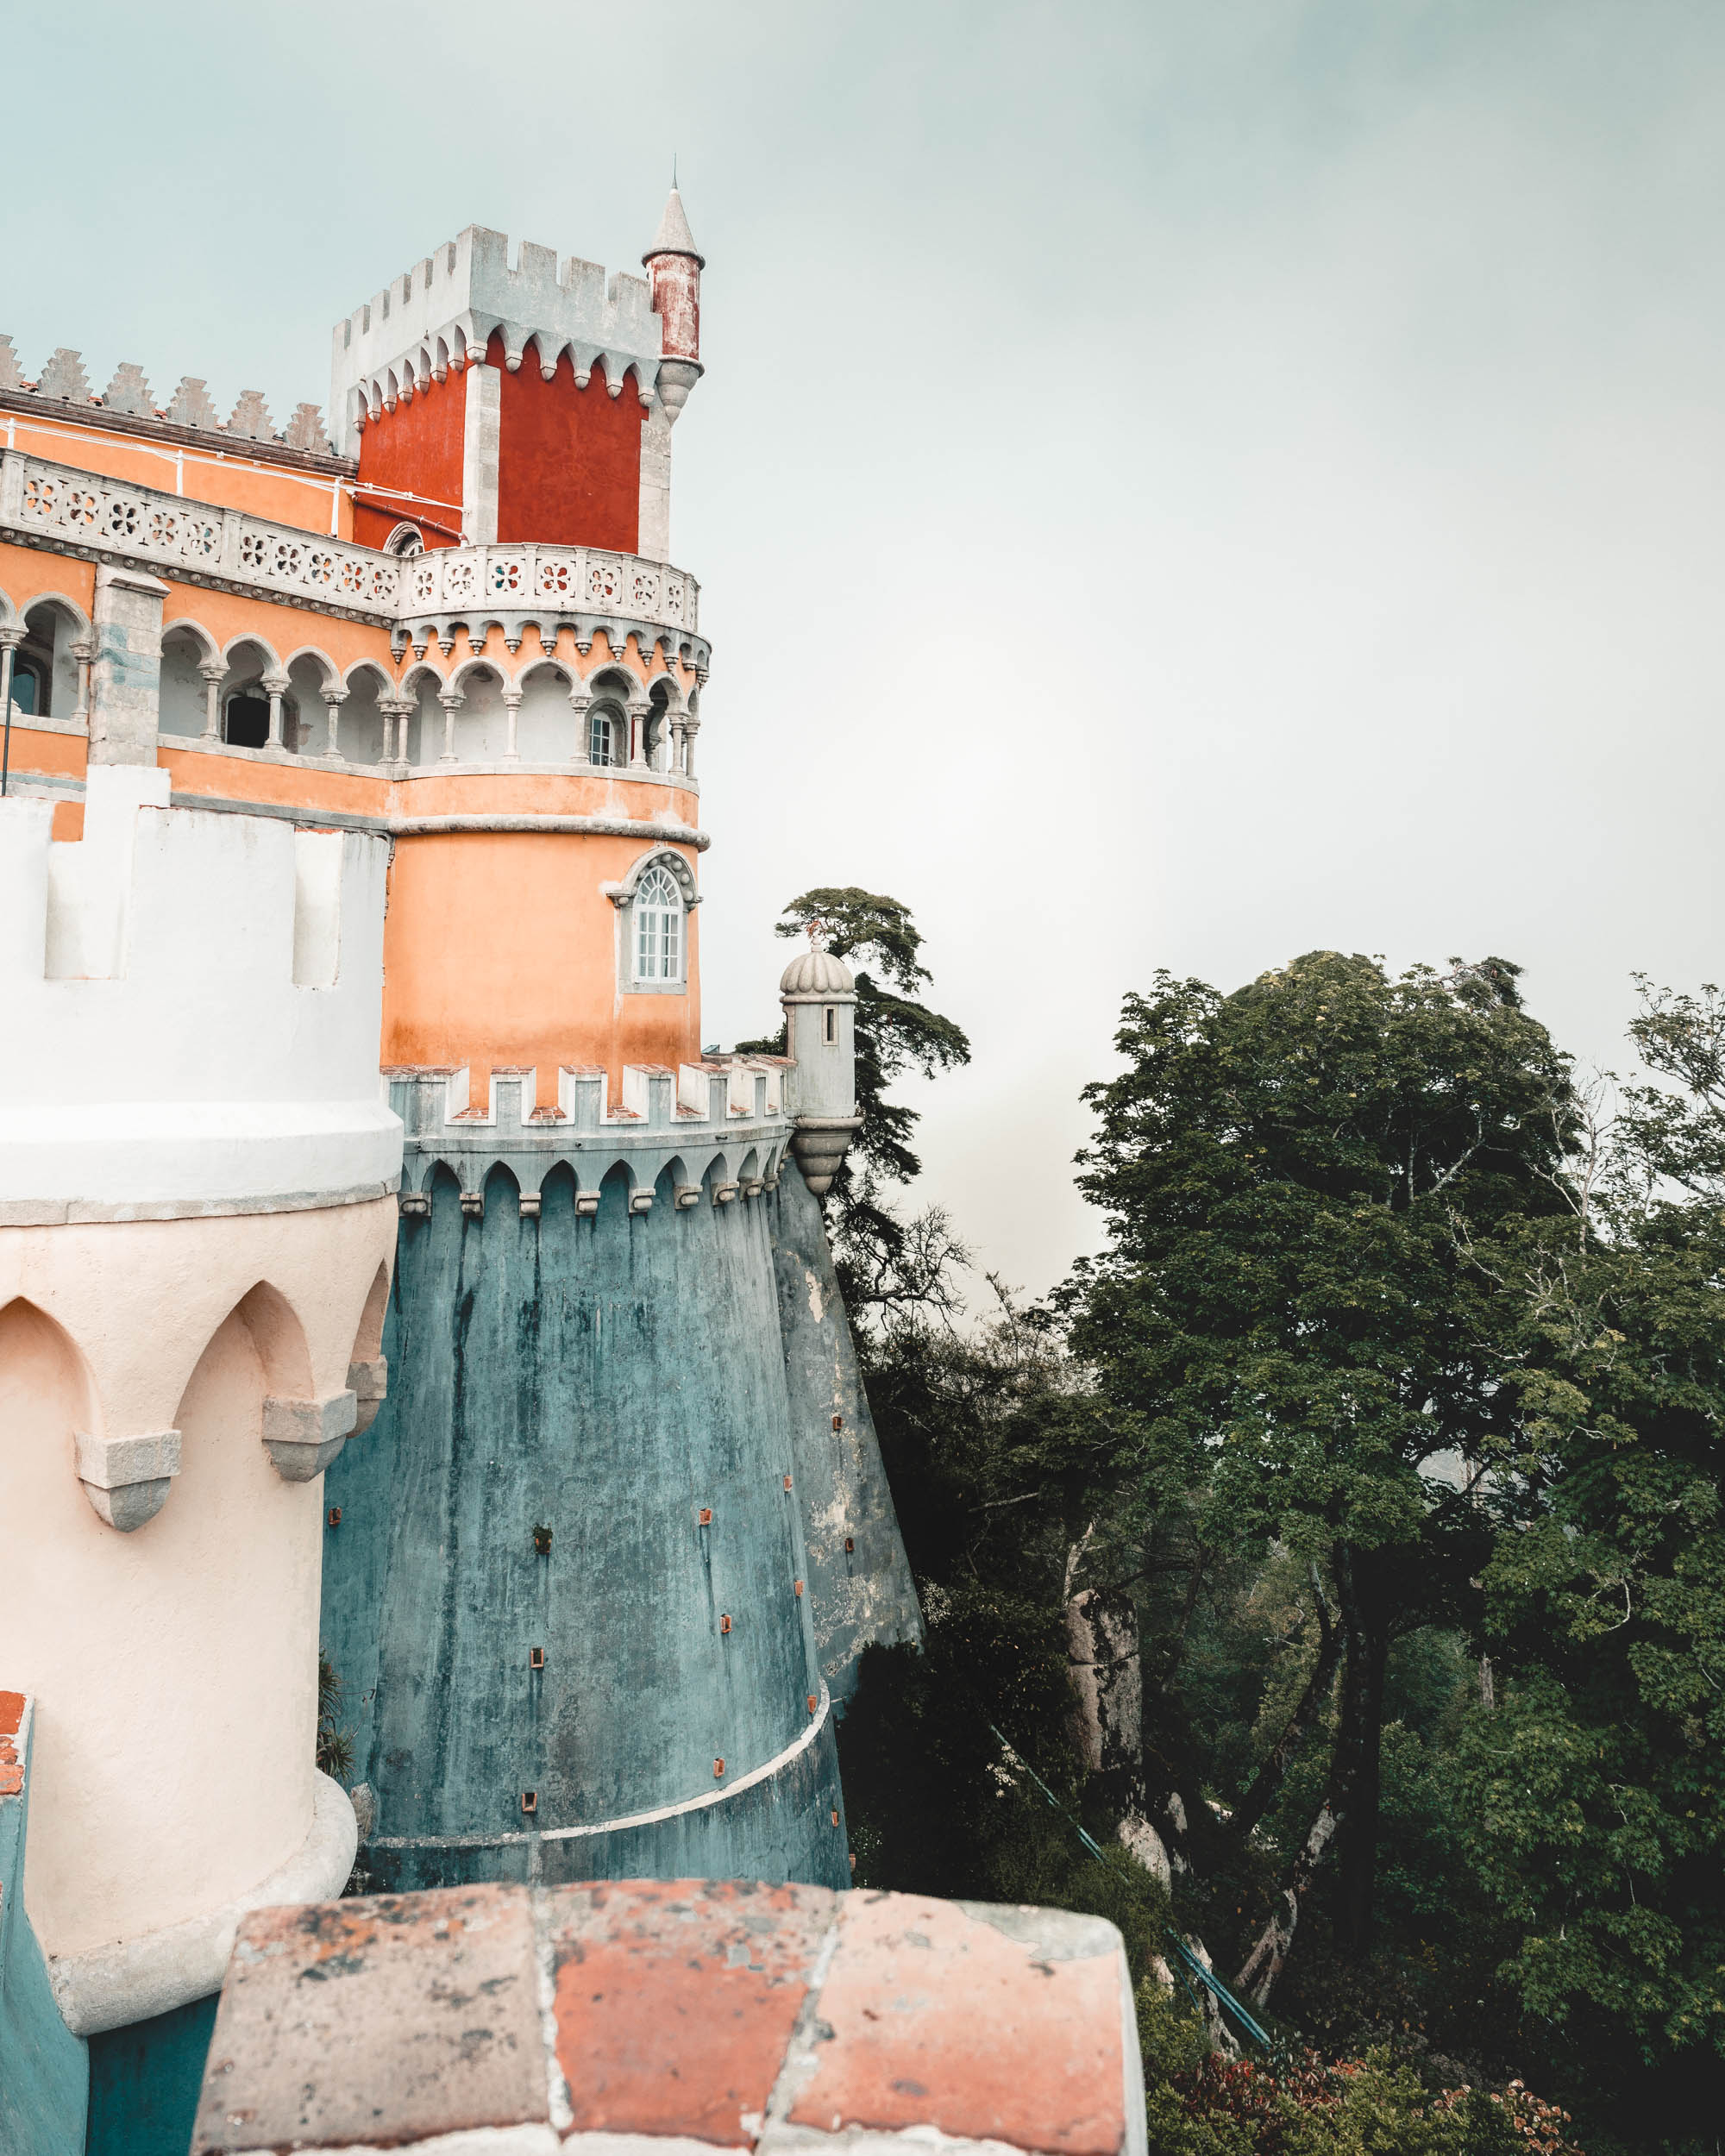 Pena Palace castle in Sintra, Portugal | Lisbon Travel Guide via Find Us Lost